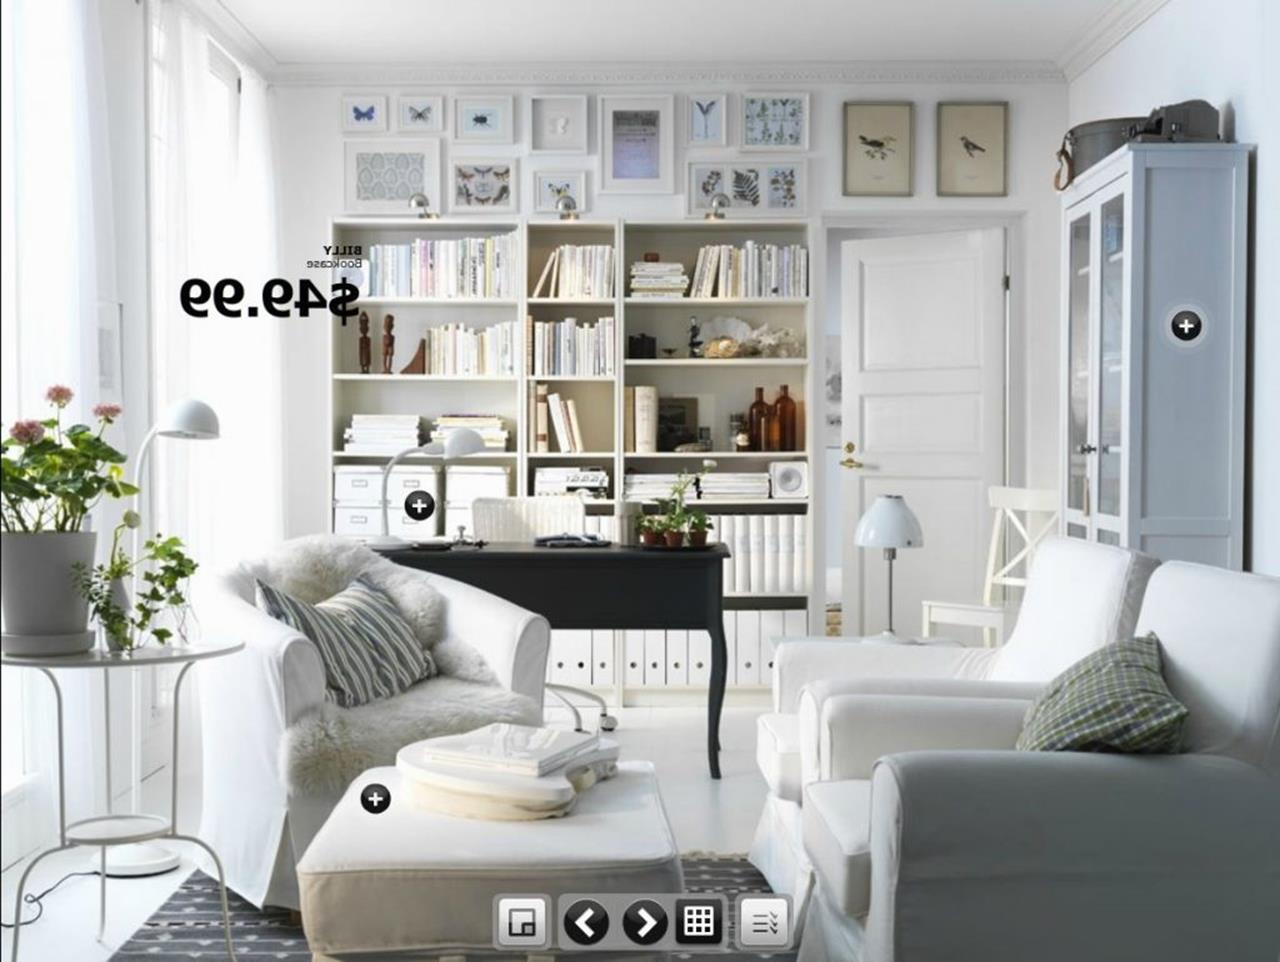 Shabby Chic Living Room Decorating on A Budget 19